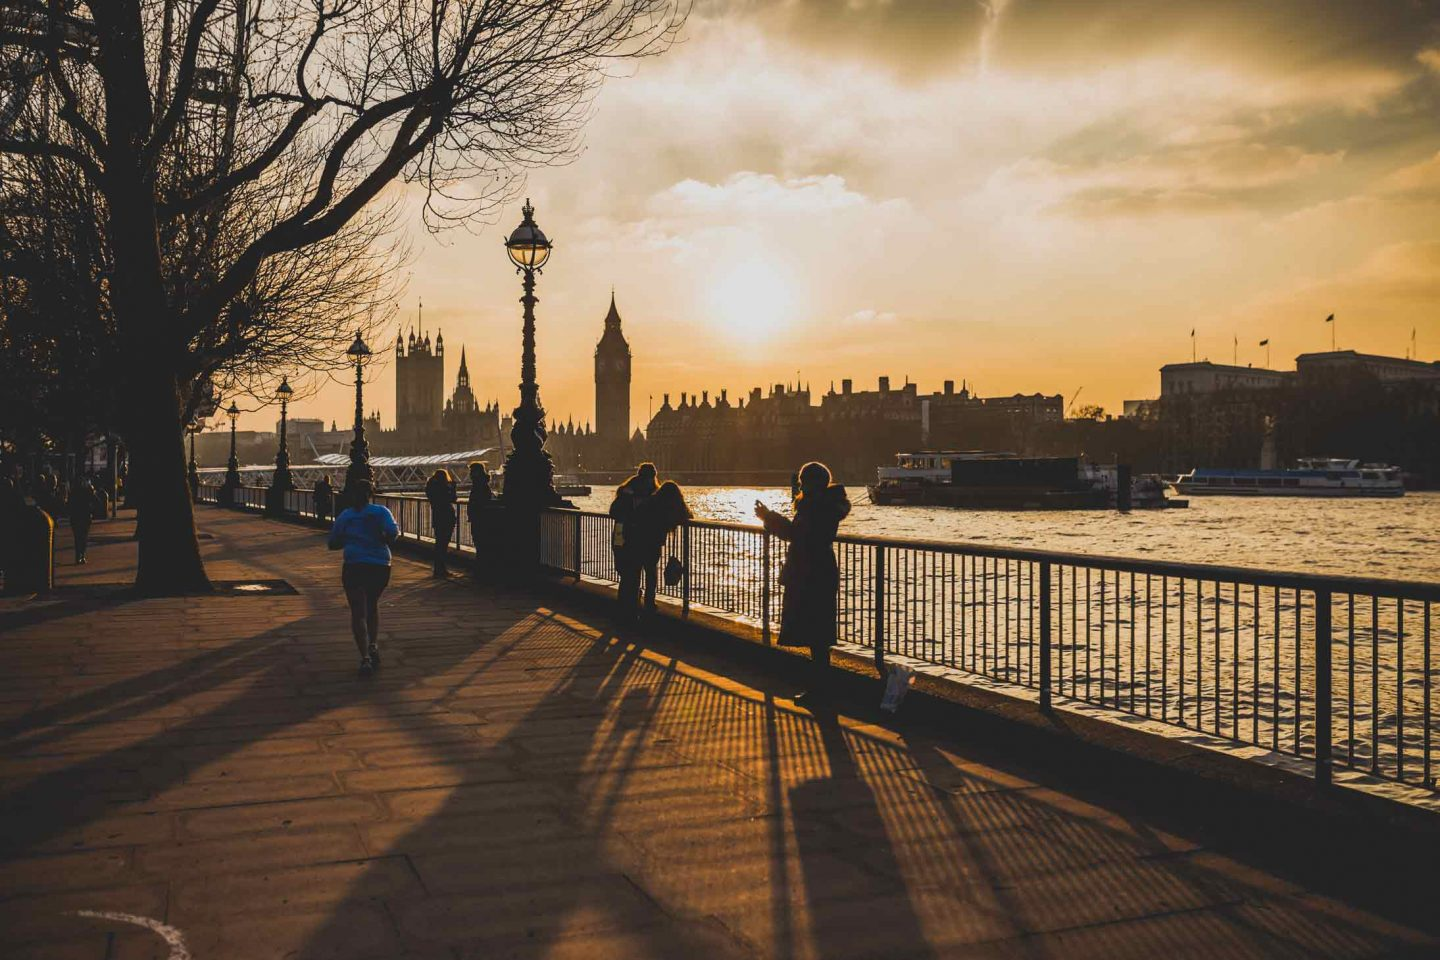 south bank at the sunset with big ben in the background